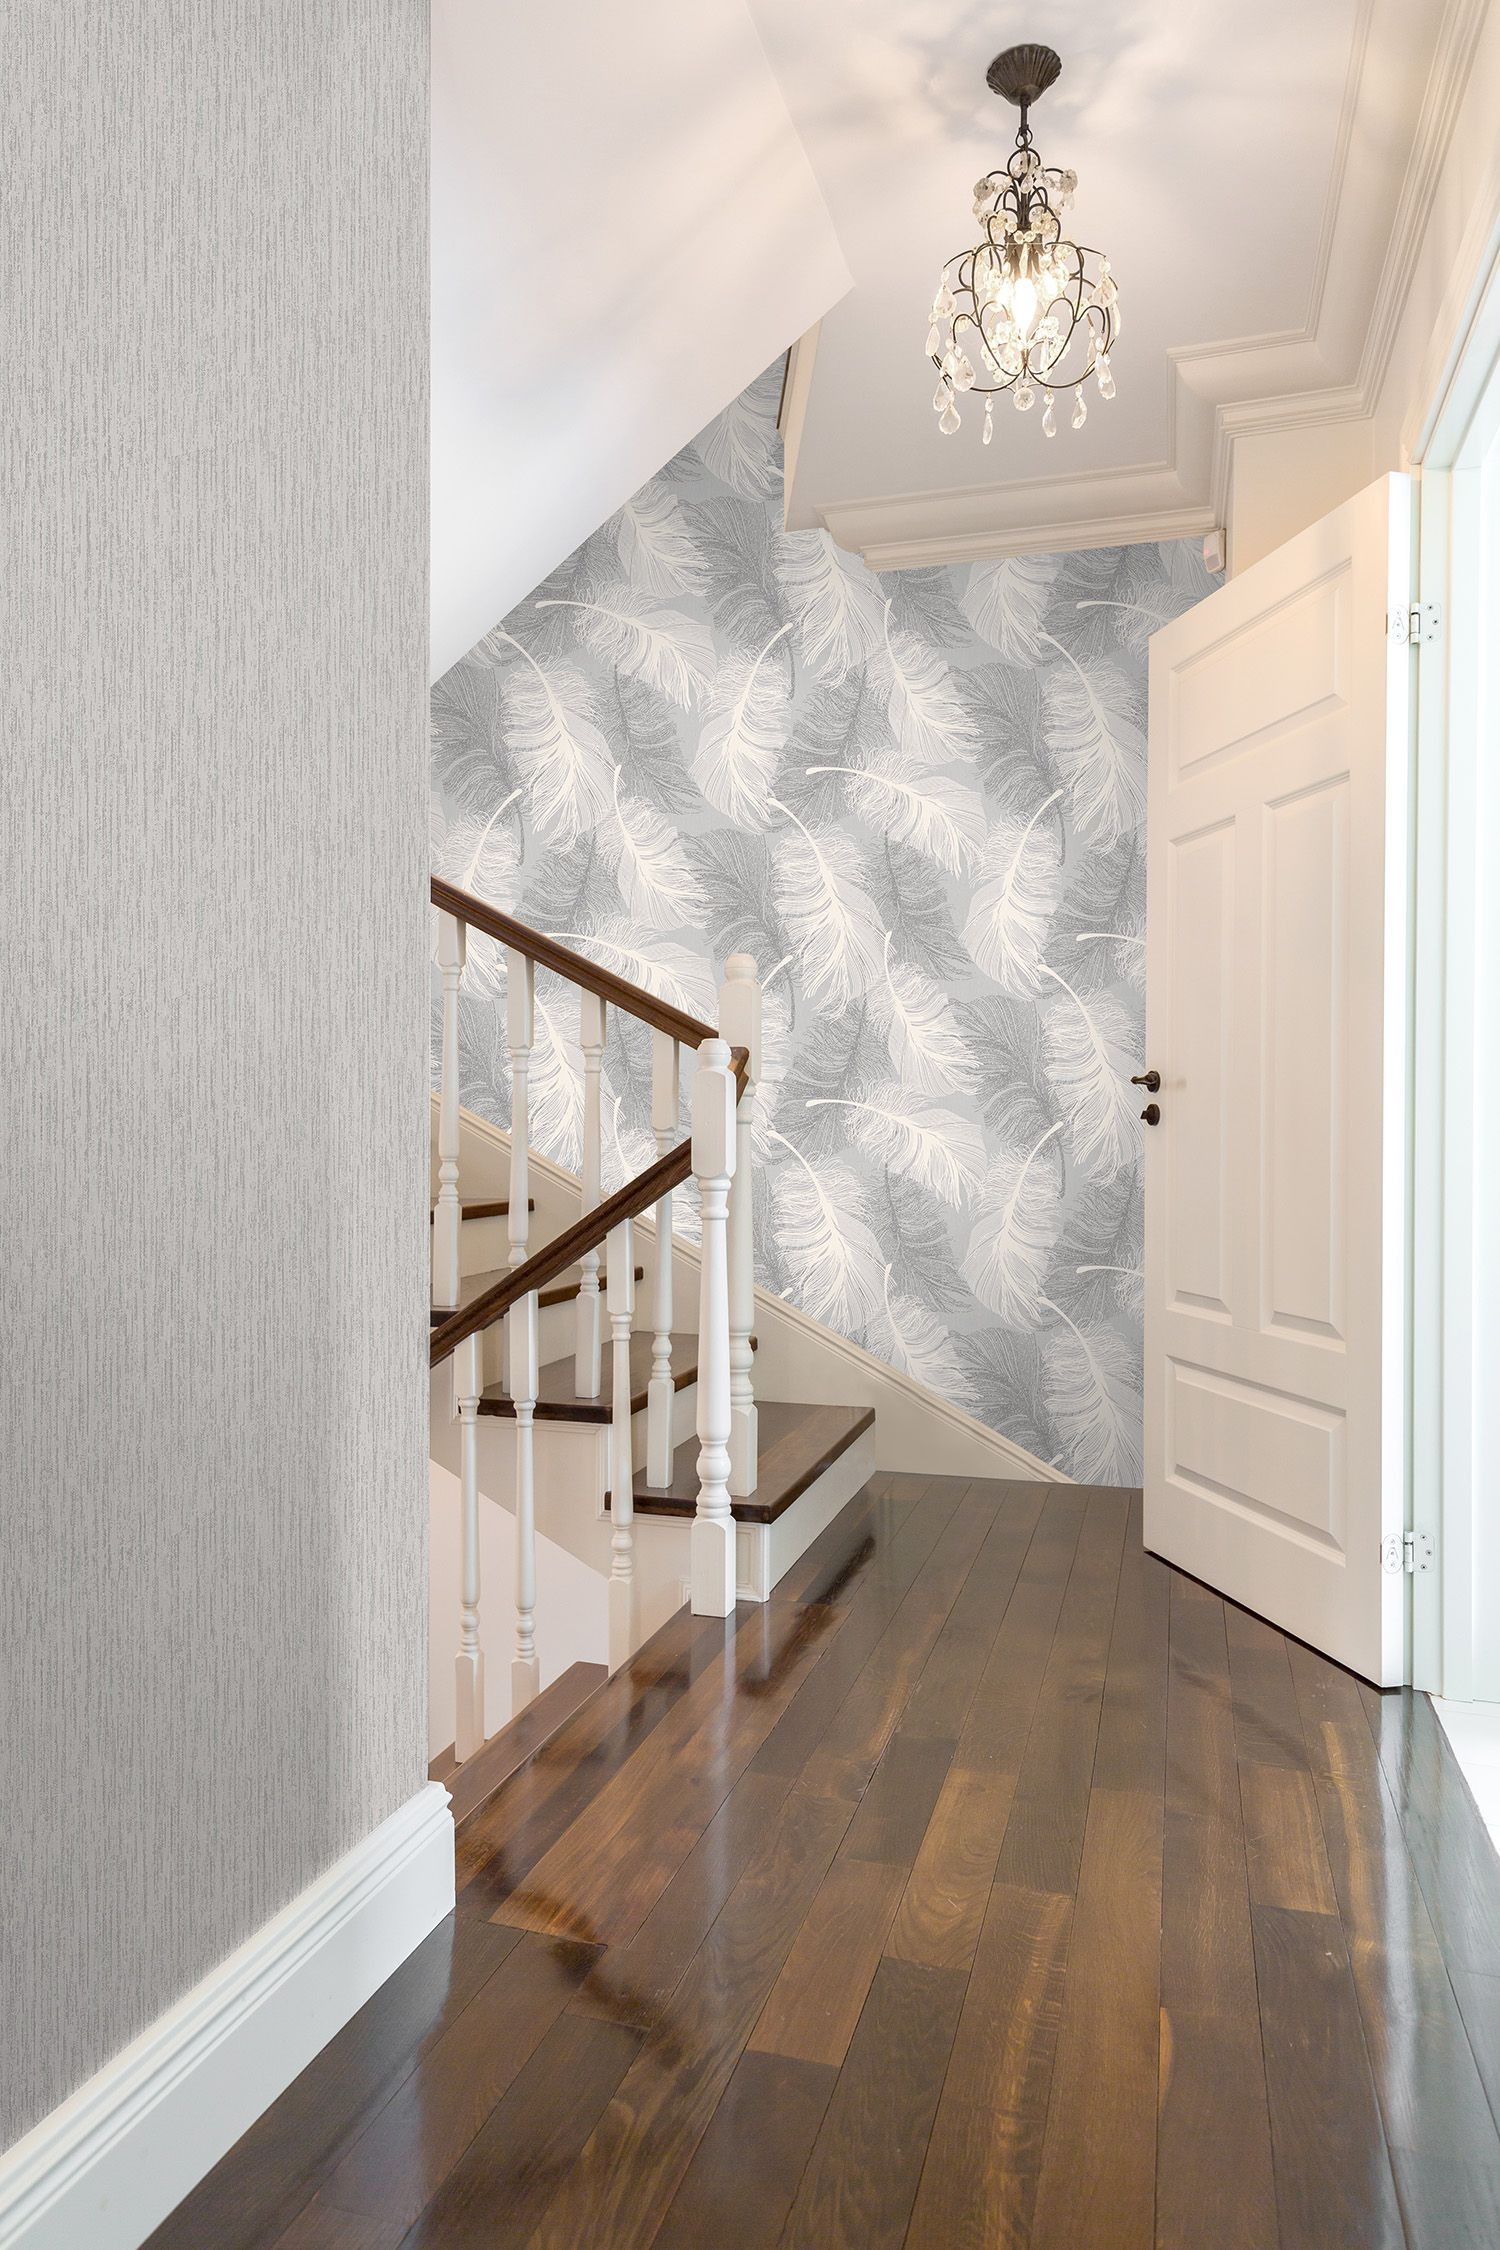 16 Hallway Wallpaper Ideas For Your Home Hallway Wallpaper Small Hallways Wallpaper Bedroom Feature Wall